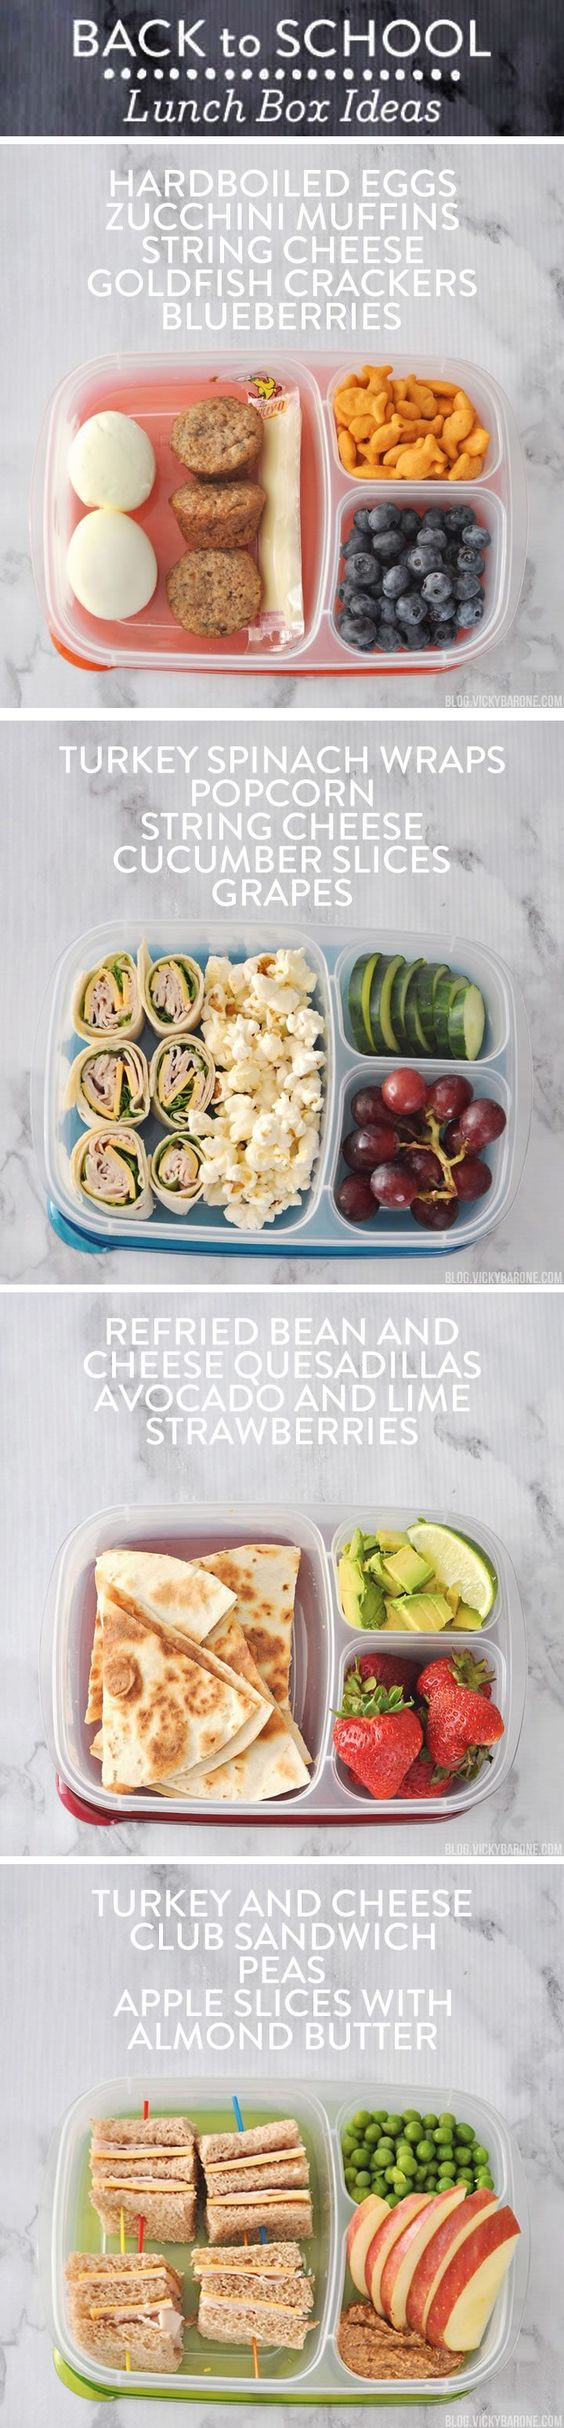 Yummy packed lunch ideas for when you're stumped on what to send your kiddo to school with.